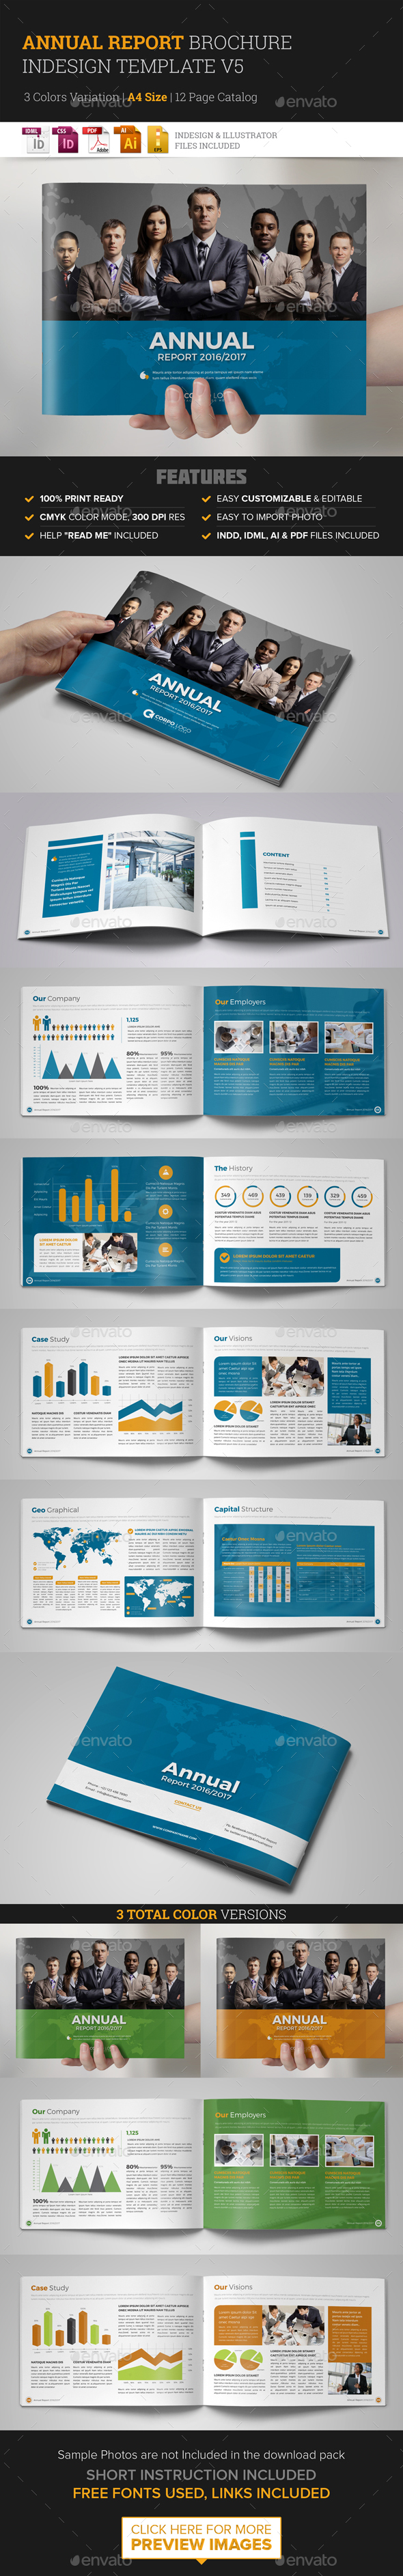 Annual Report Brochure Indesign Template 5  - Corporate Brochures